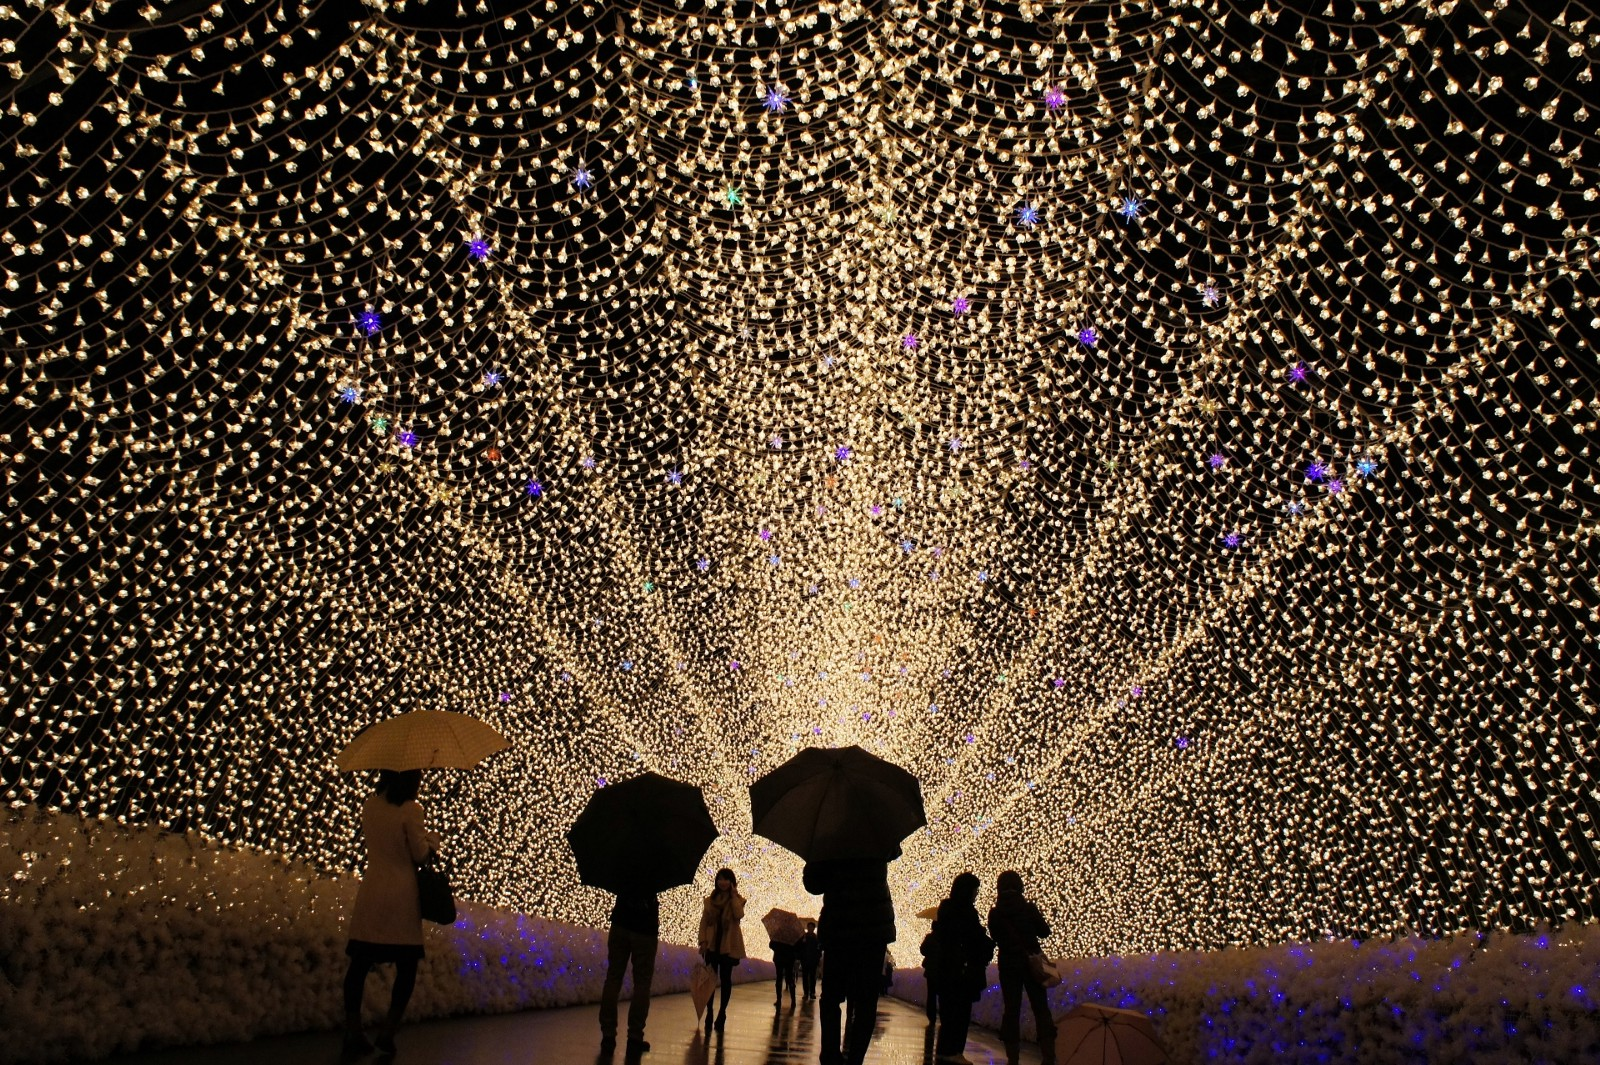 The spectacular tunnel of lights at Nabana no Sato